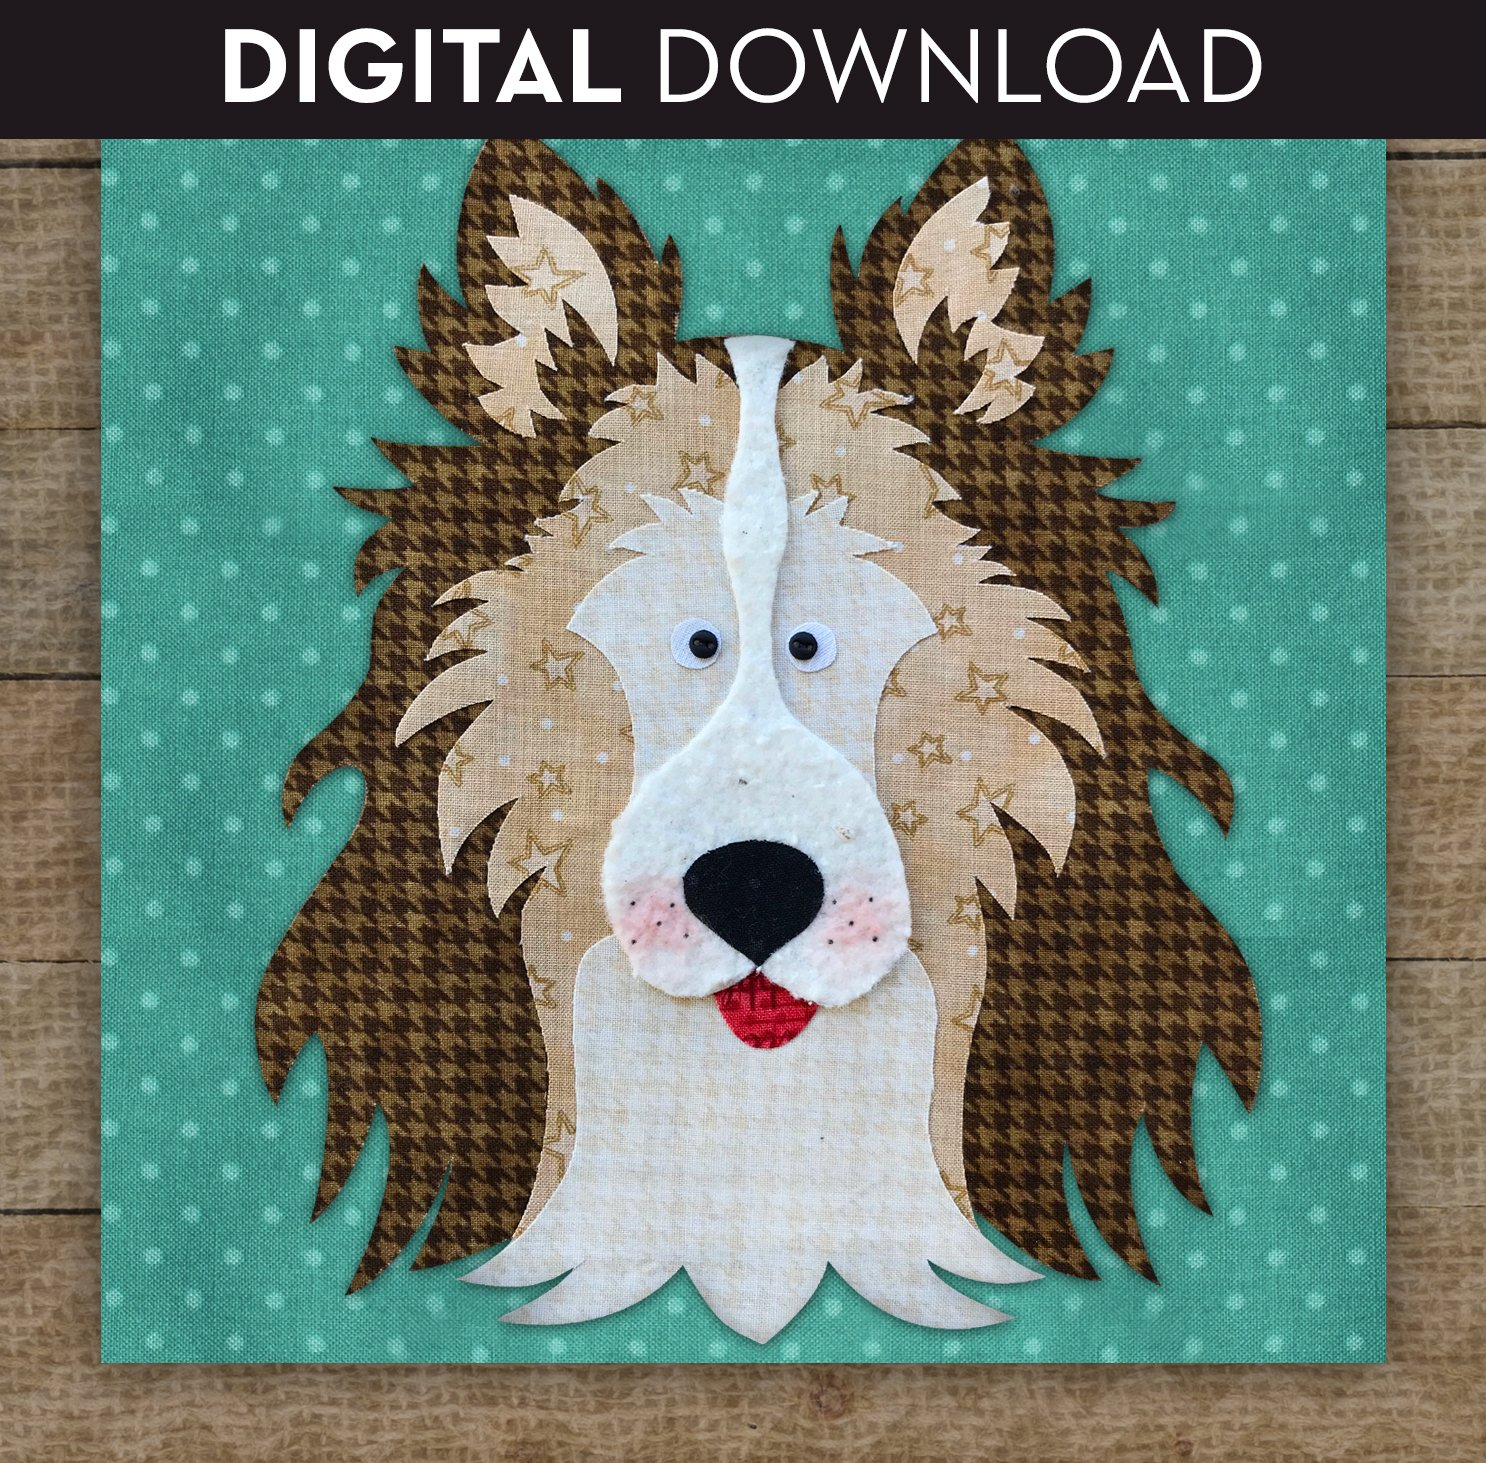 Collie / Sheltie - Download